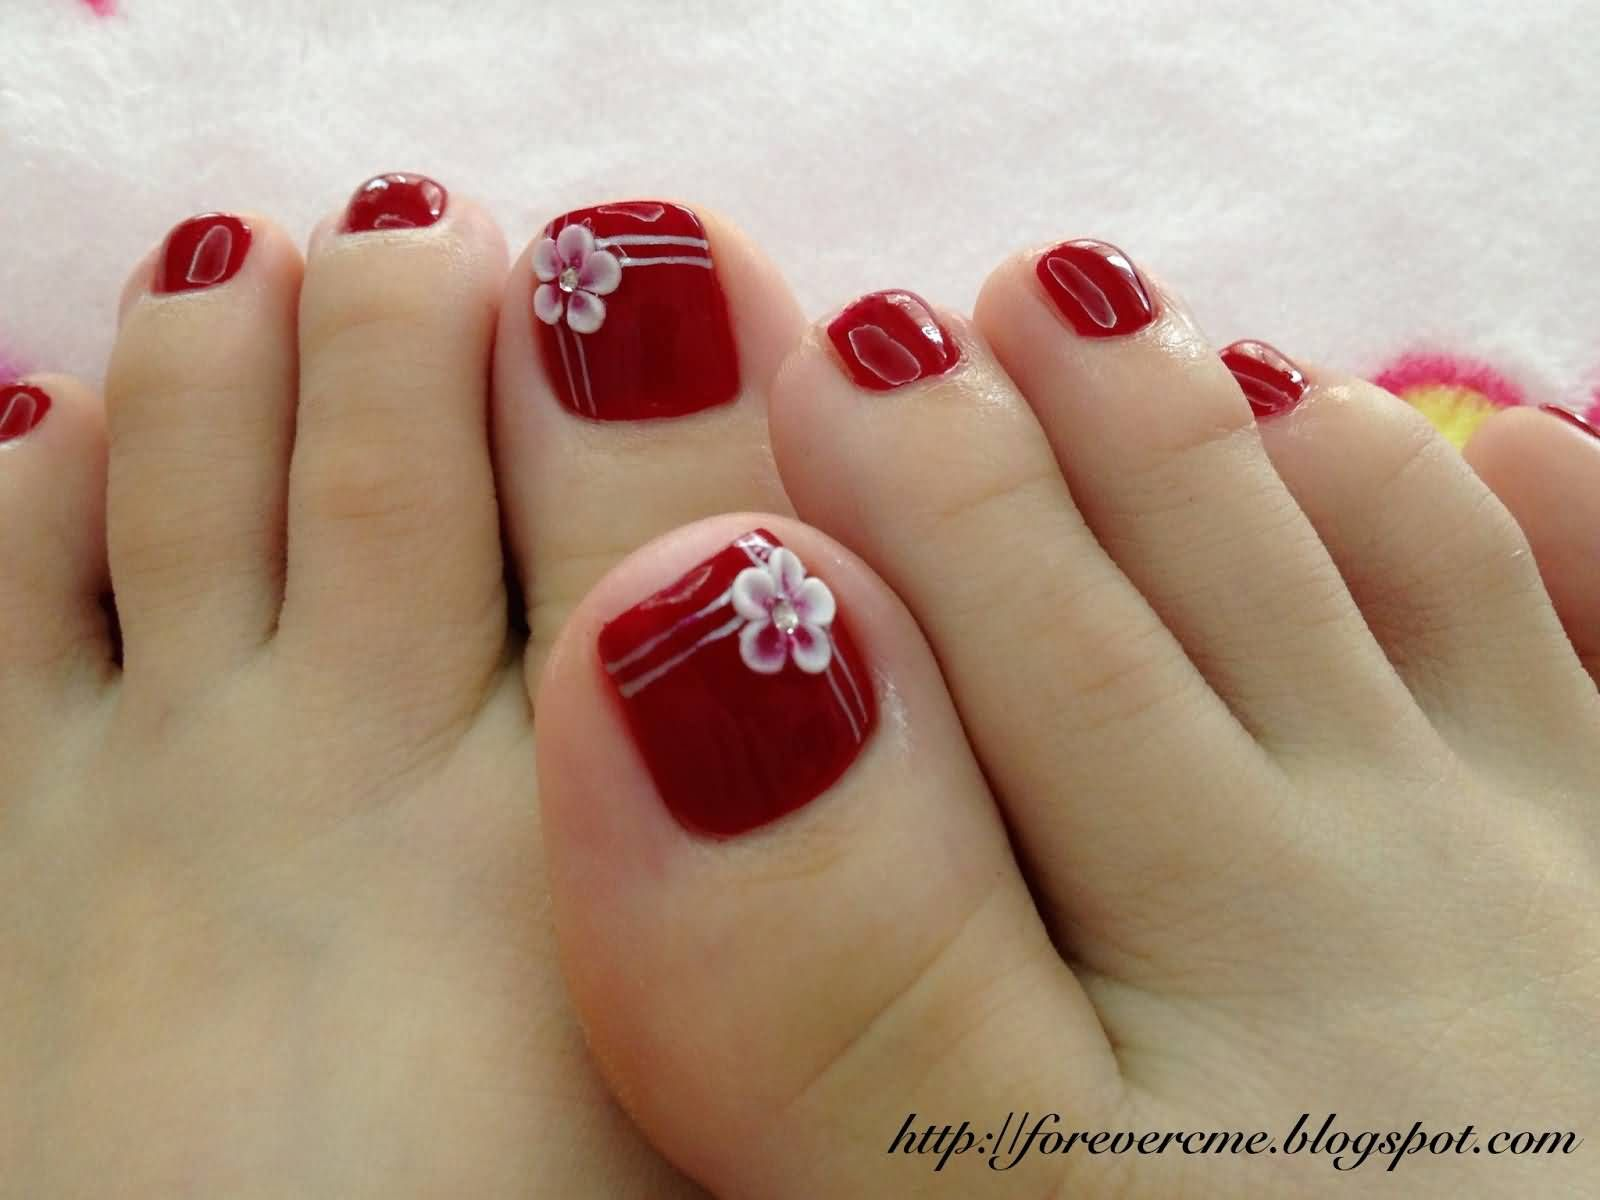 Beautiful Red Toe Nails With White 3d Flower Nail Art Pedicure